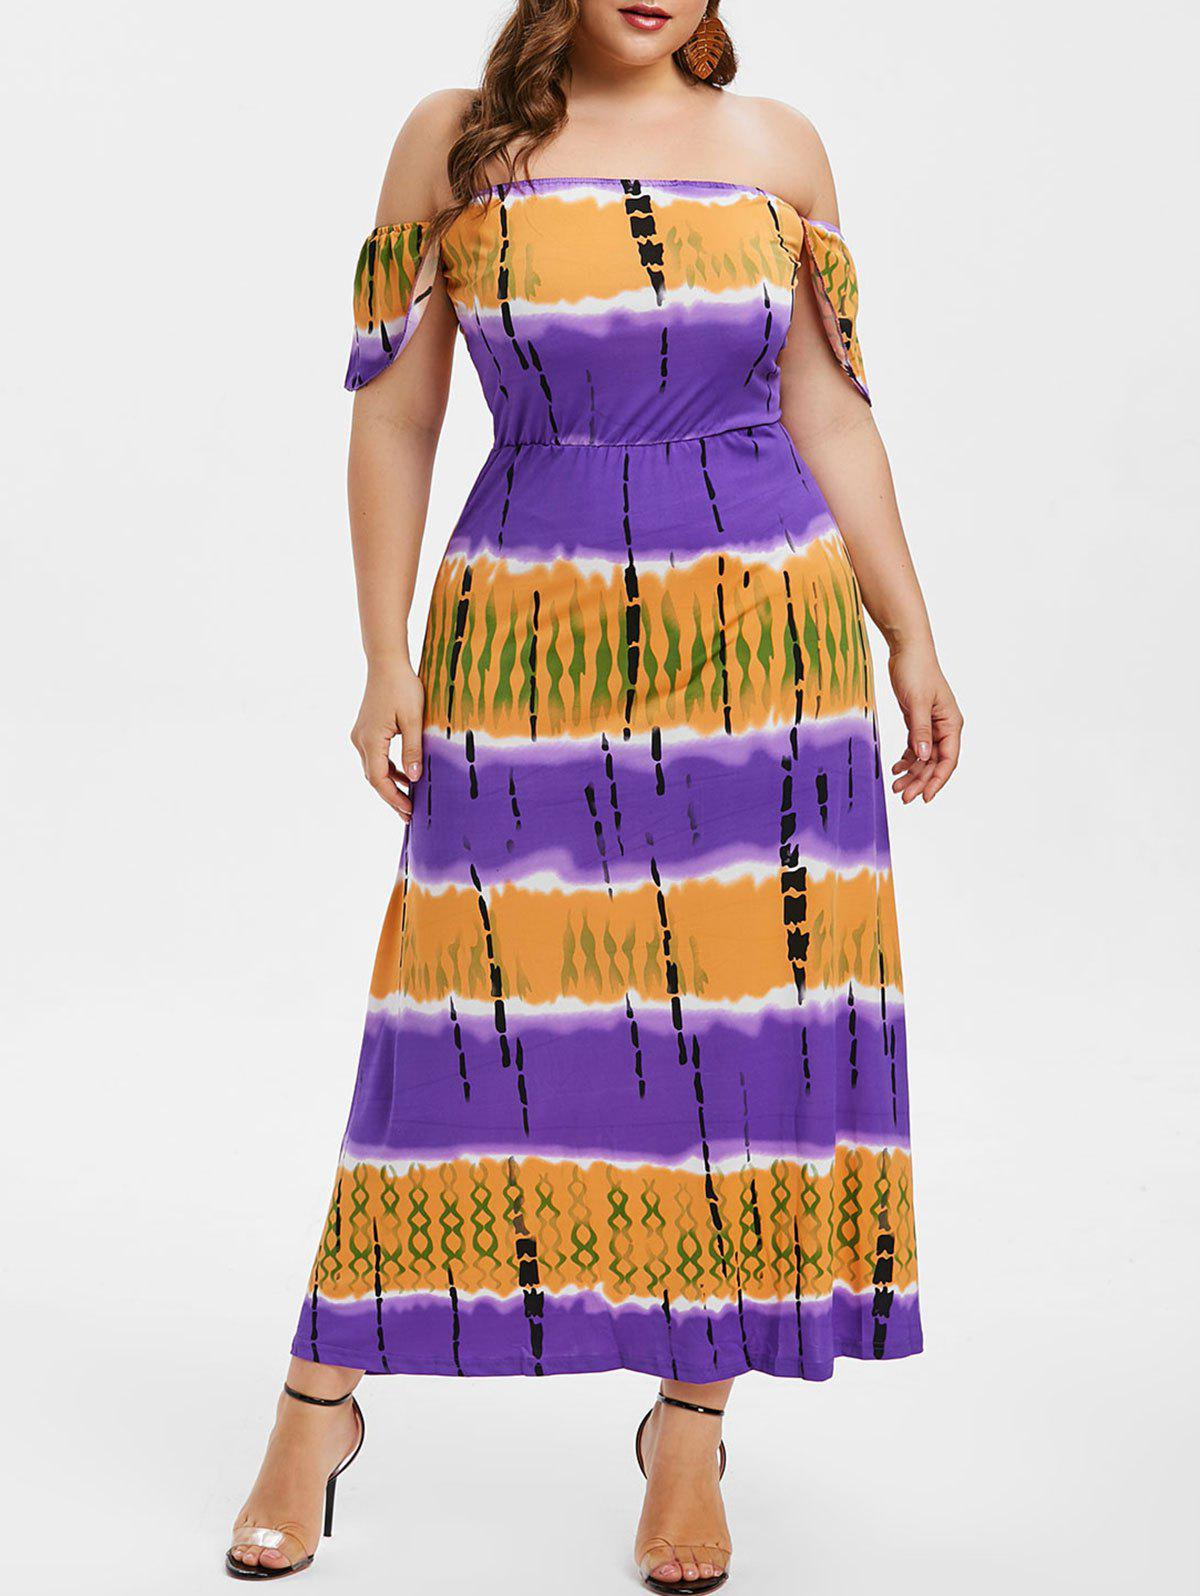 3868c9a8be5 2019 Plus Size OFF Shoulder Tie Dye Maxi Dress